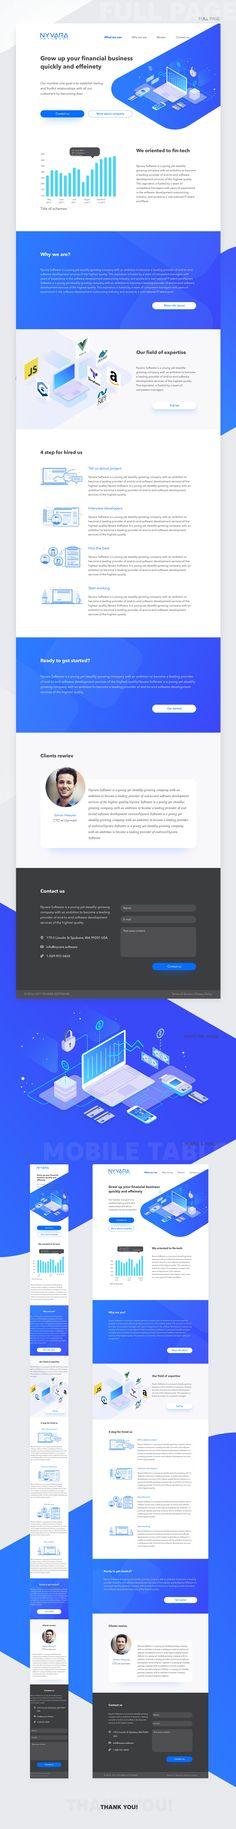 Landing page represents one of the most popular outsourcing industry - finance. The visual style of landing page - clear and light. It's a metaphor for the finance industry - show transparency and minimalism style. We have used bright blue color for creat…